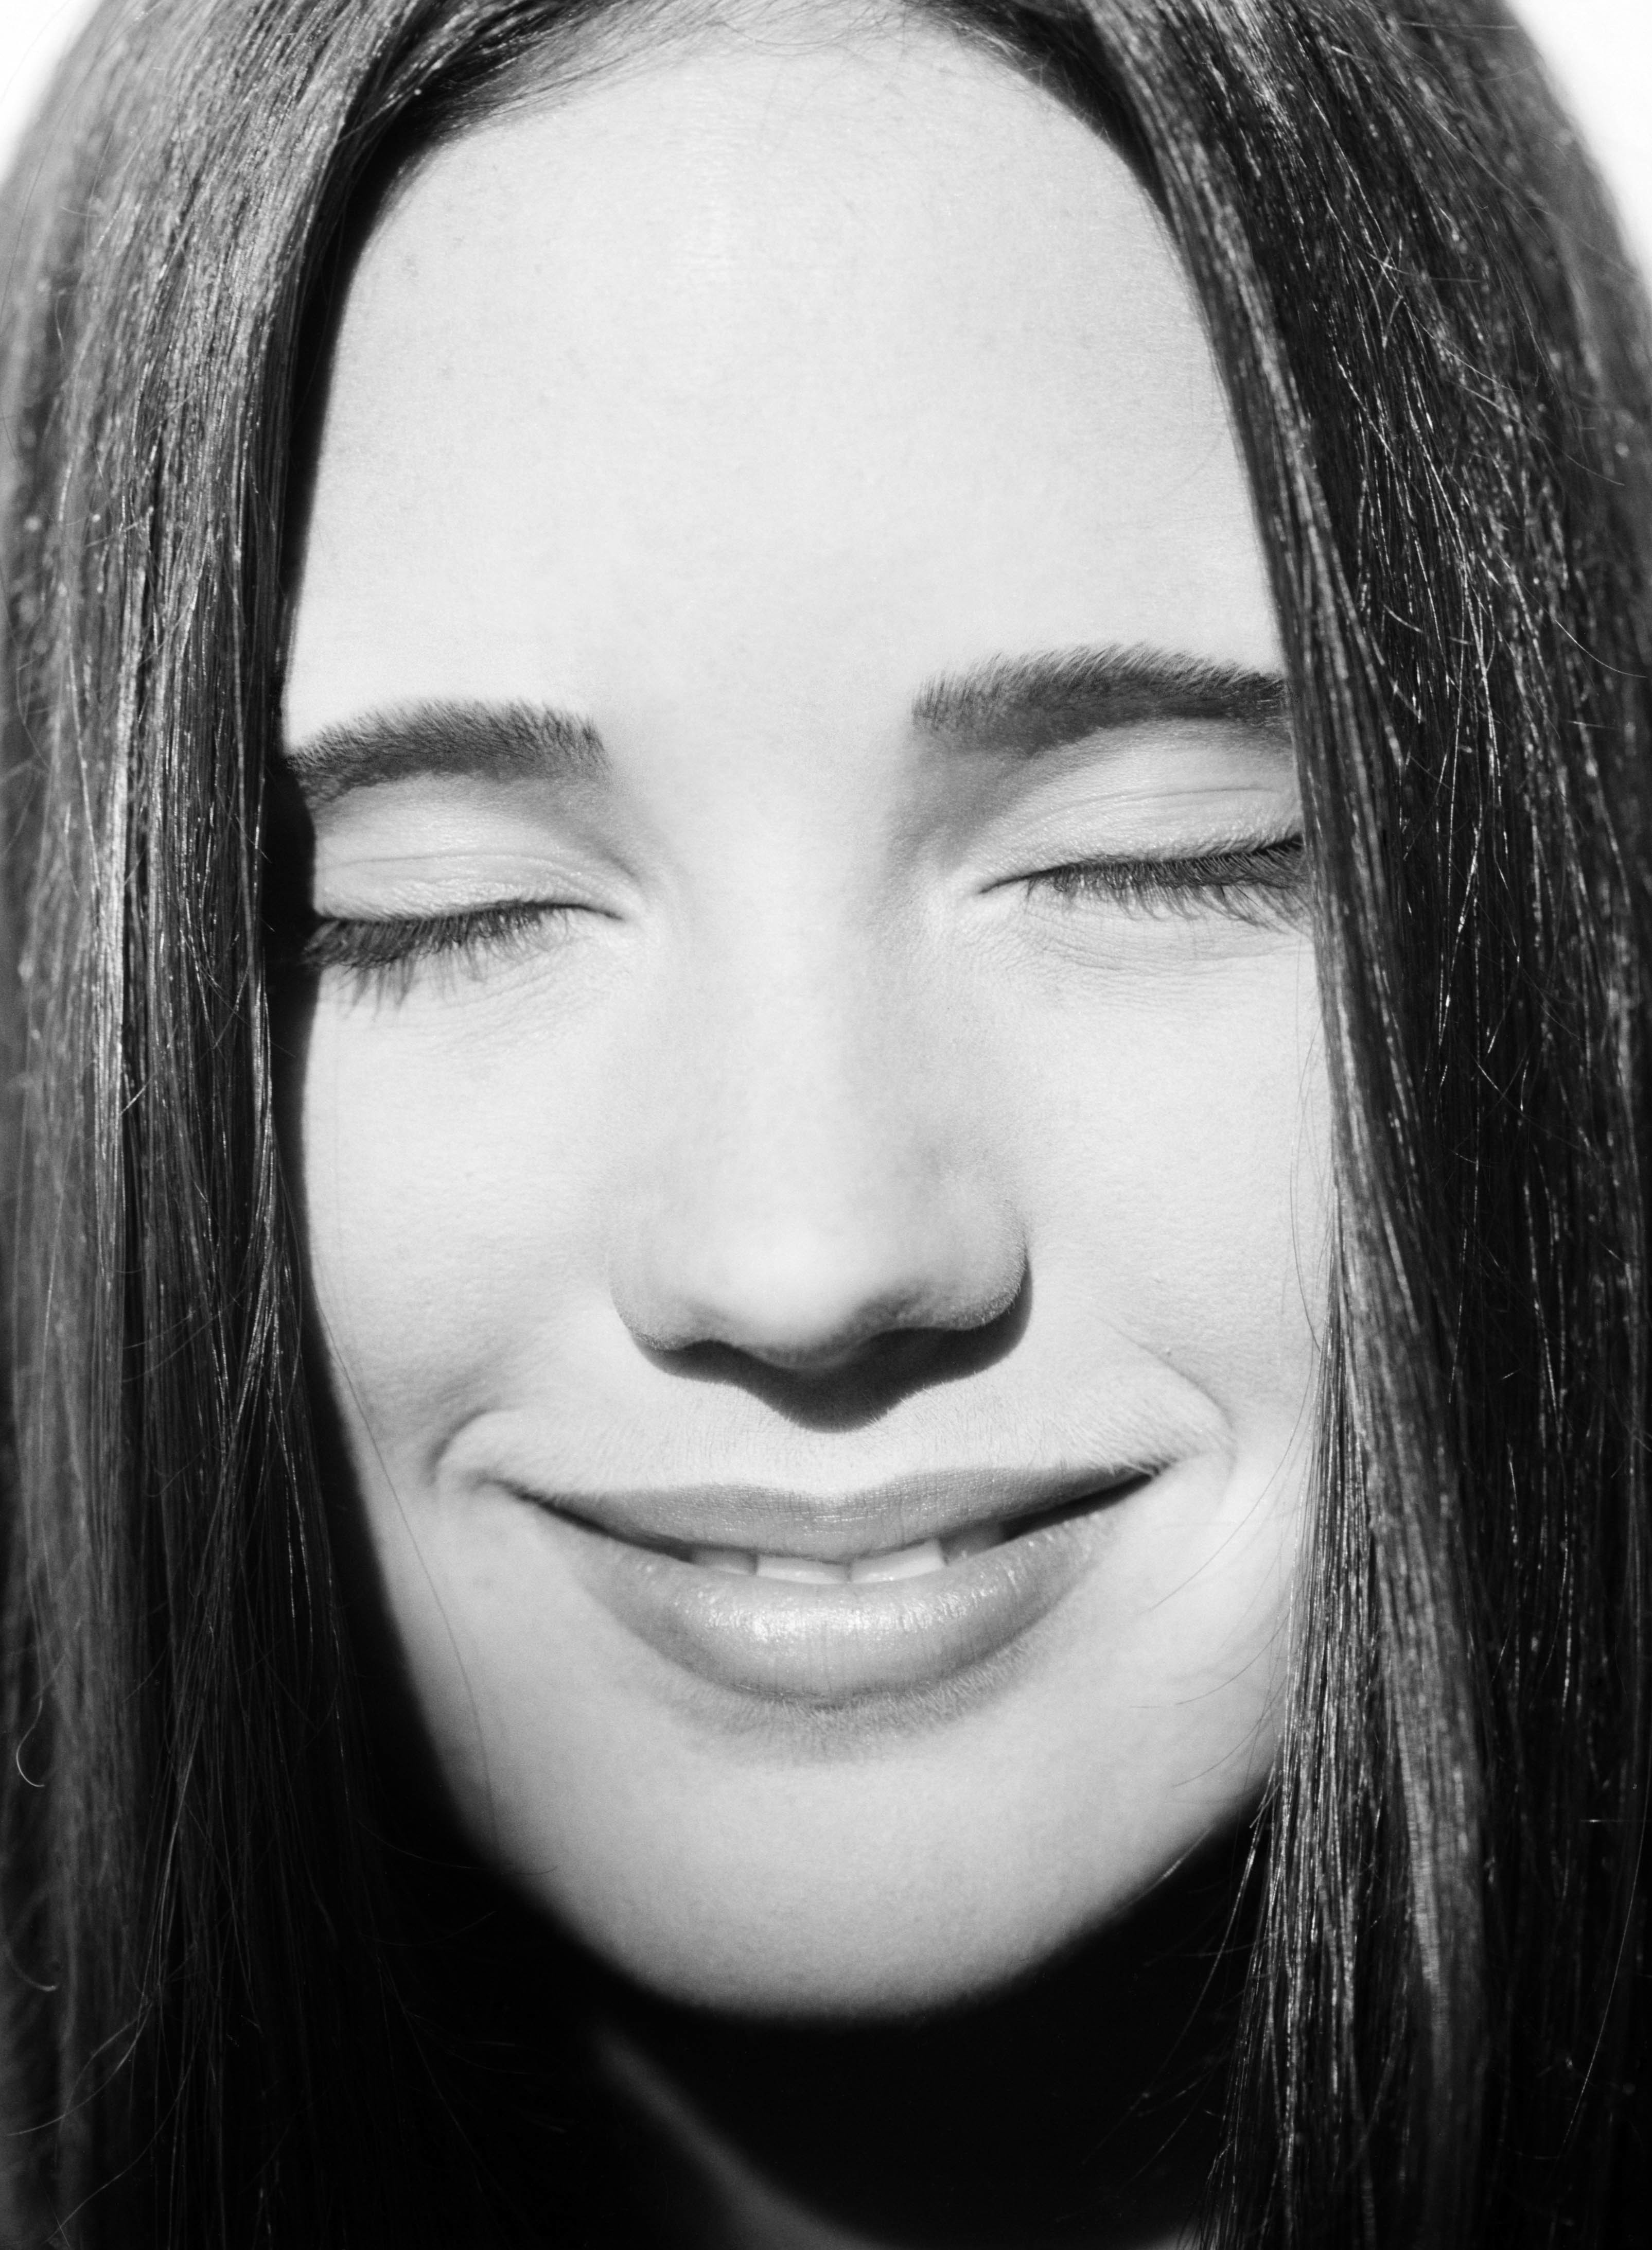 Jennifer connelly grayscale smiley HD Wallpaper